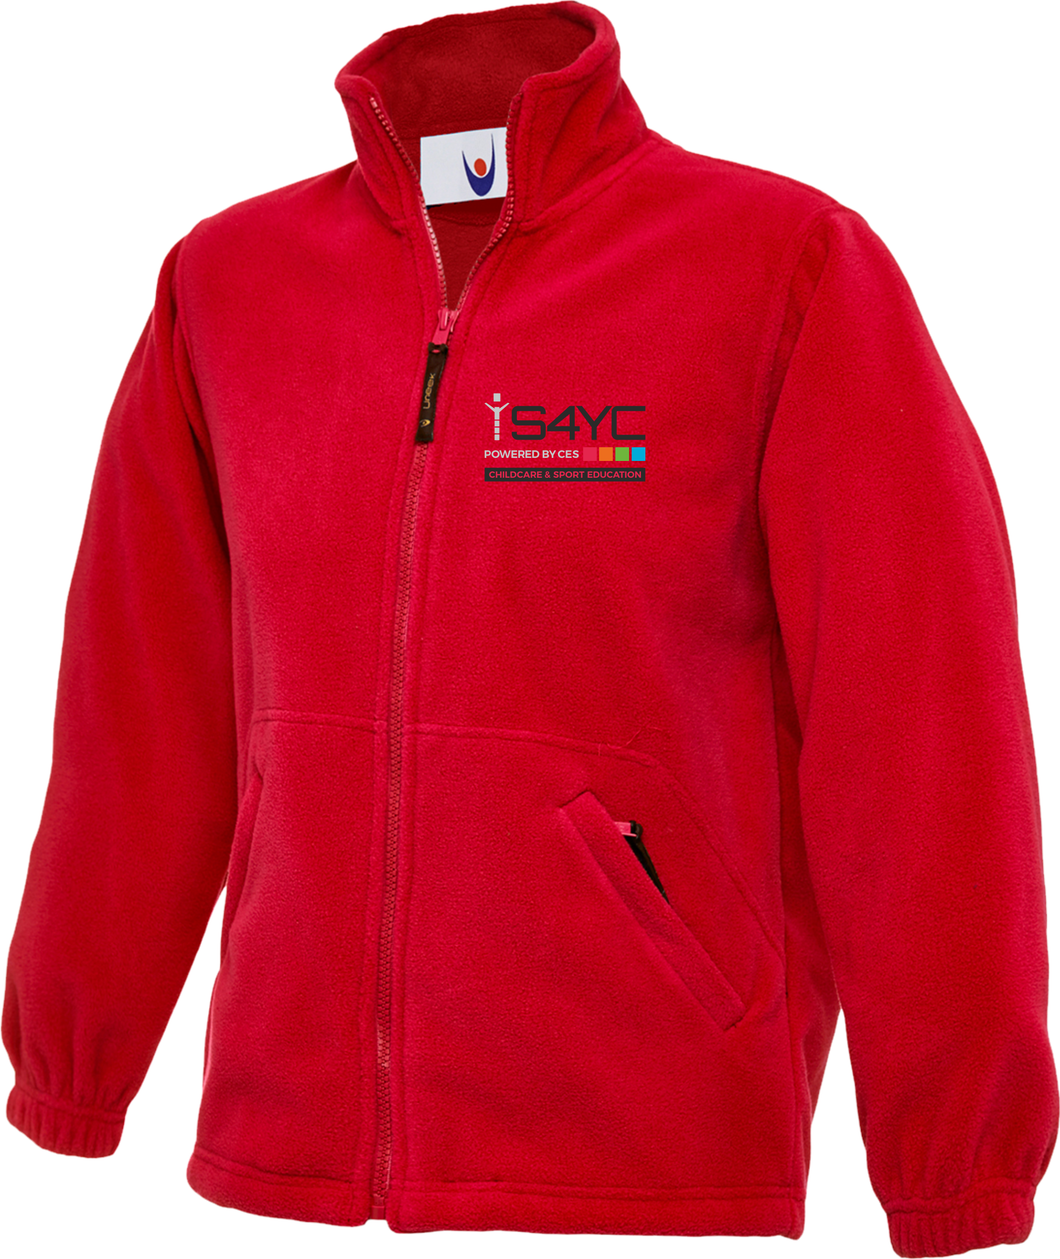 S4YC Child's Unisex Fleece